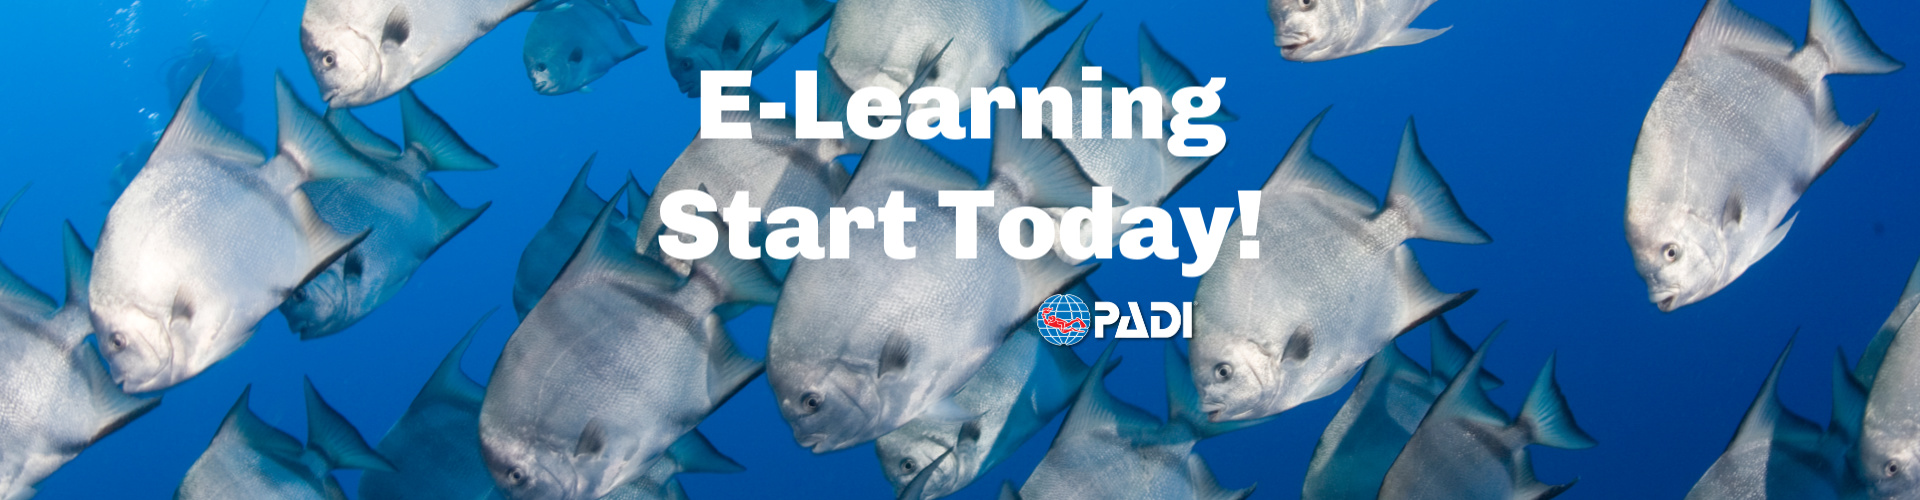 E-Learn Start Today